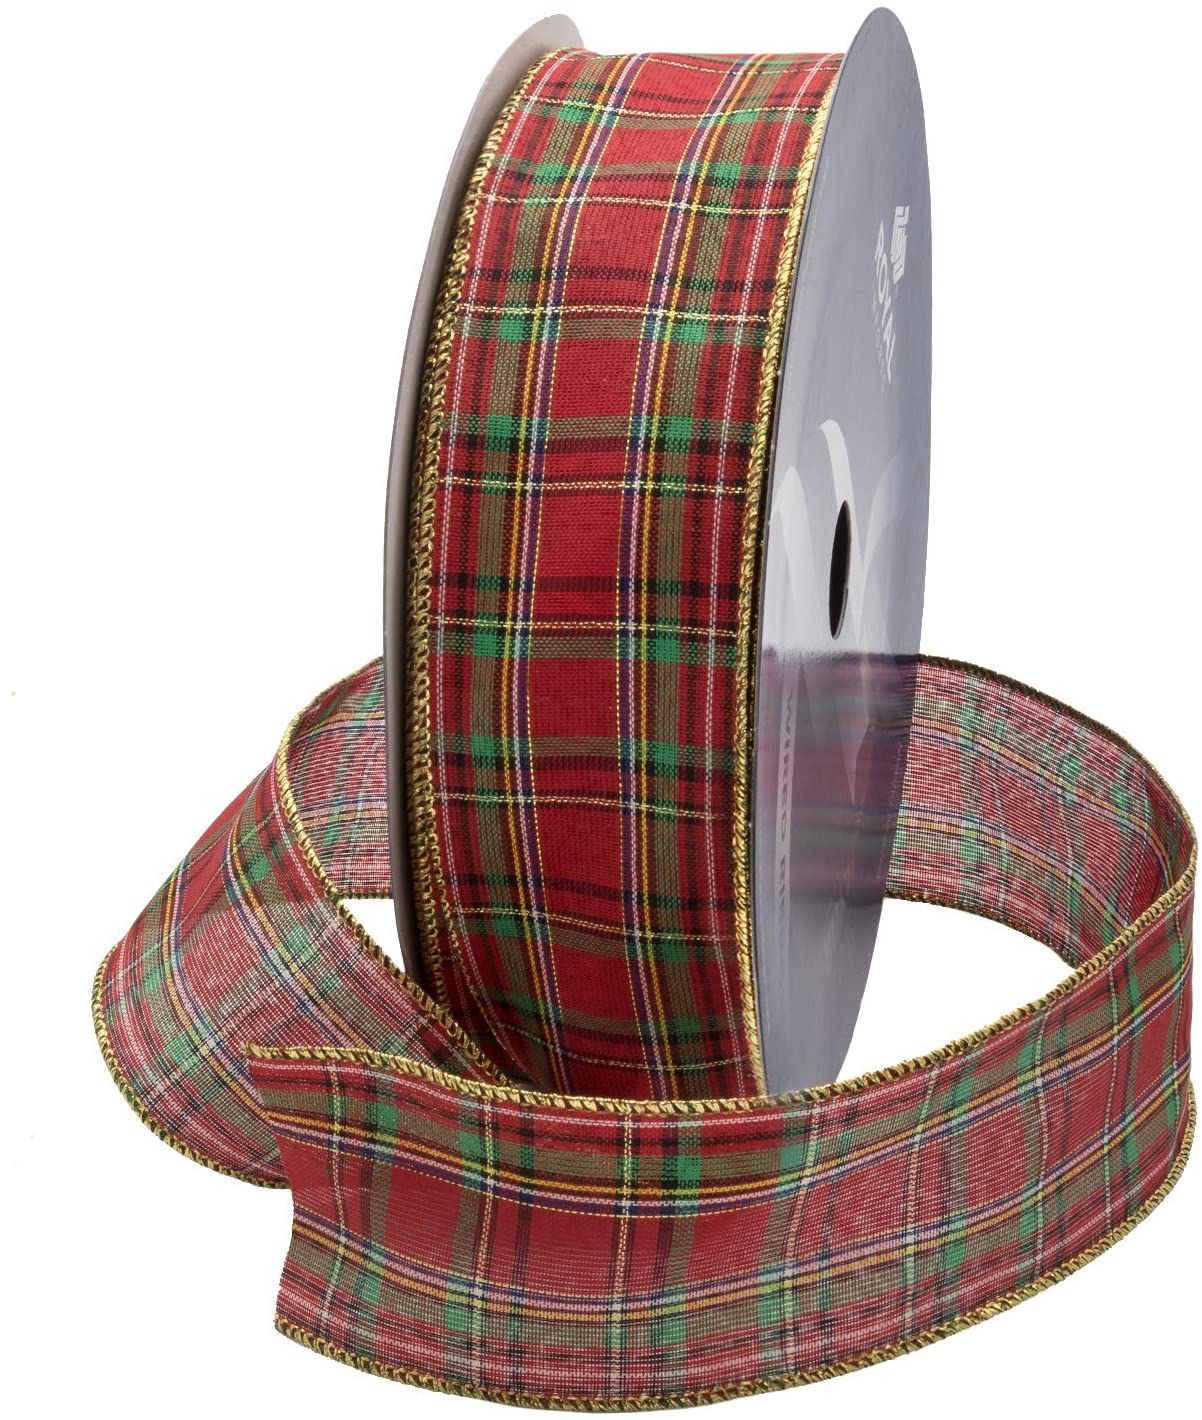 Wired Traditional Red Clarkston Tartan Plaid Christmas Ribbon Waterproof with Gold Edge 2 1/2